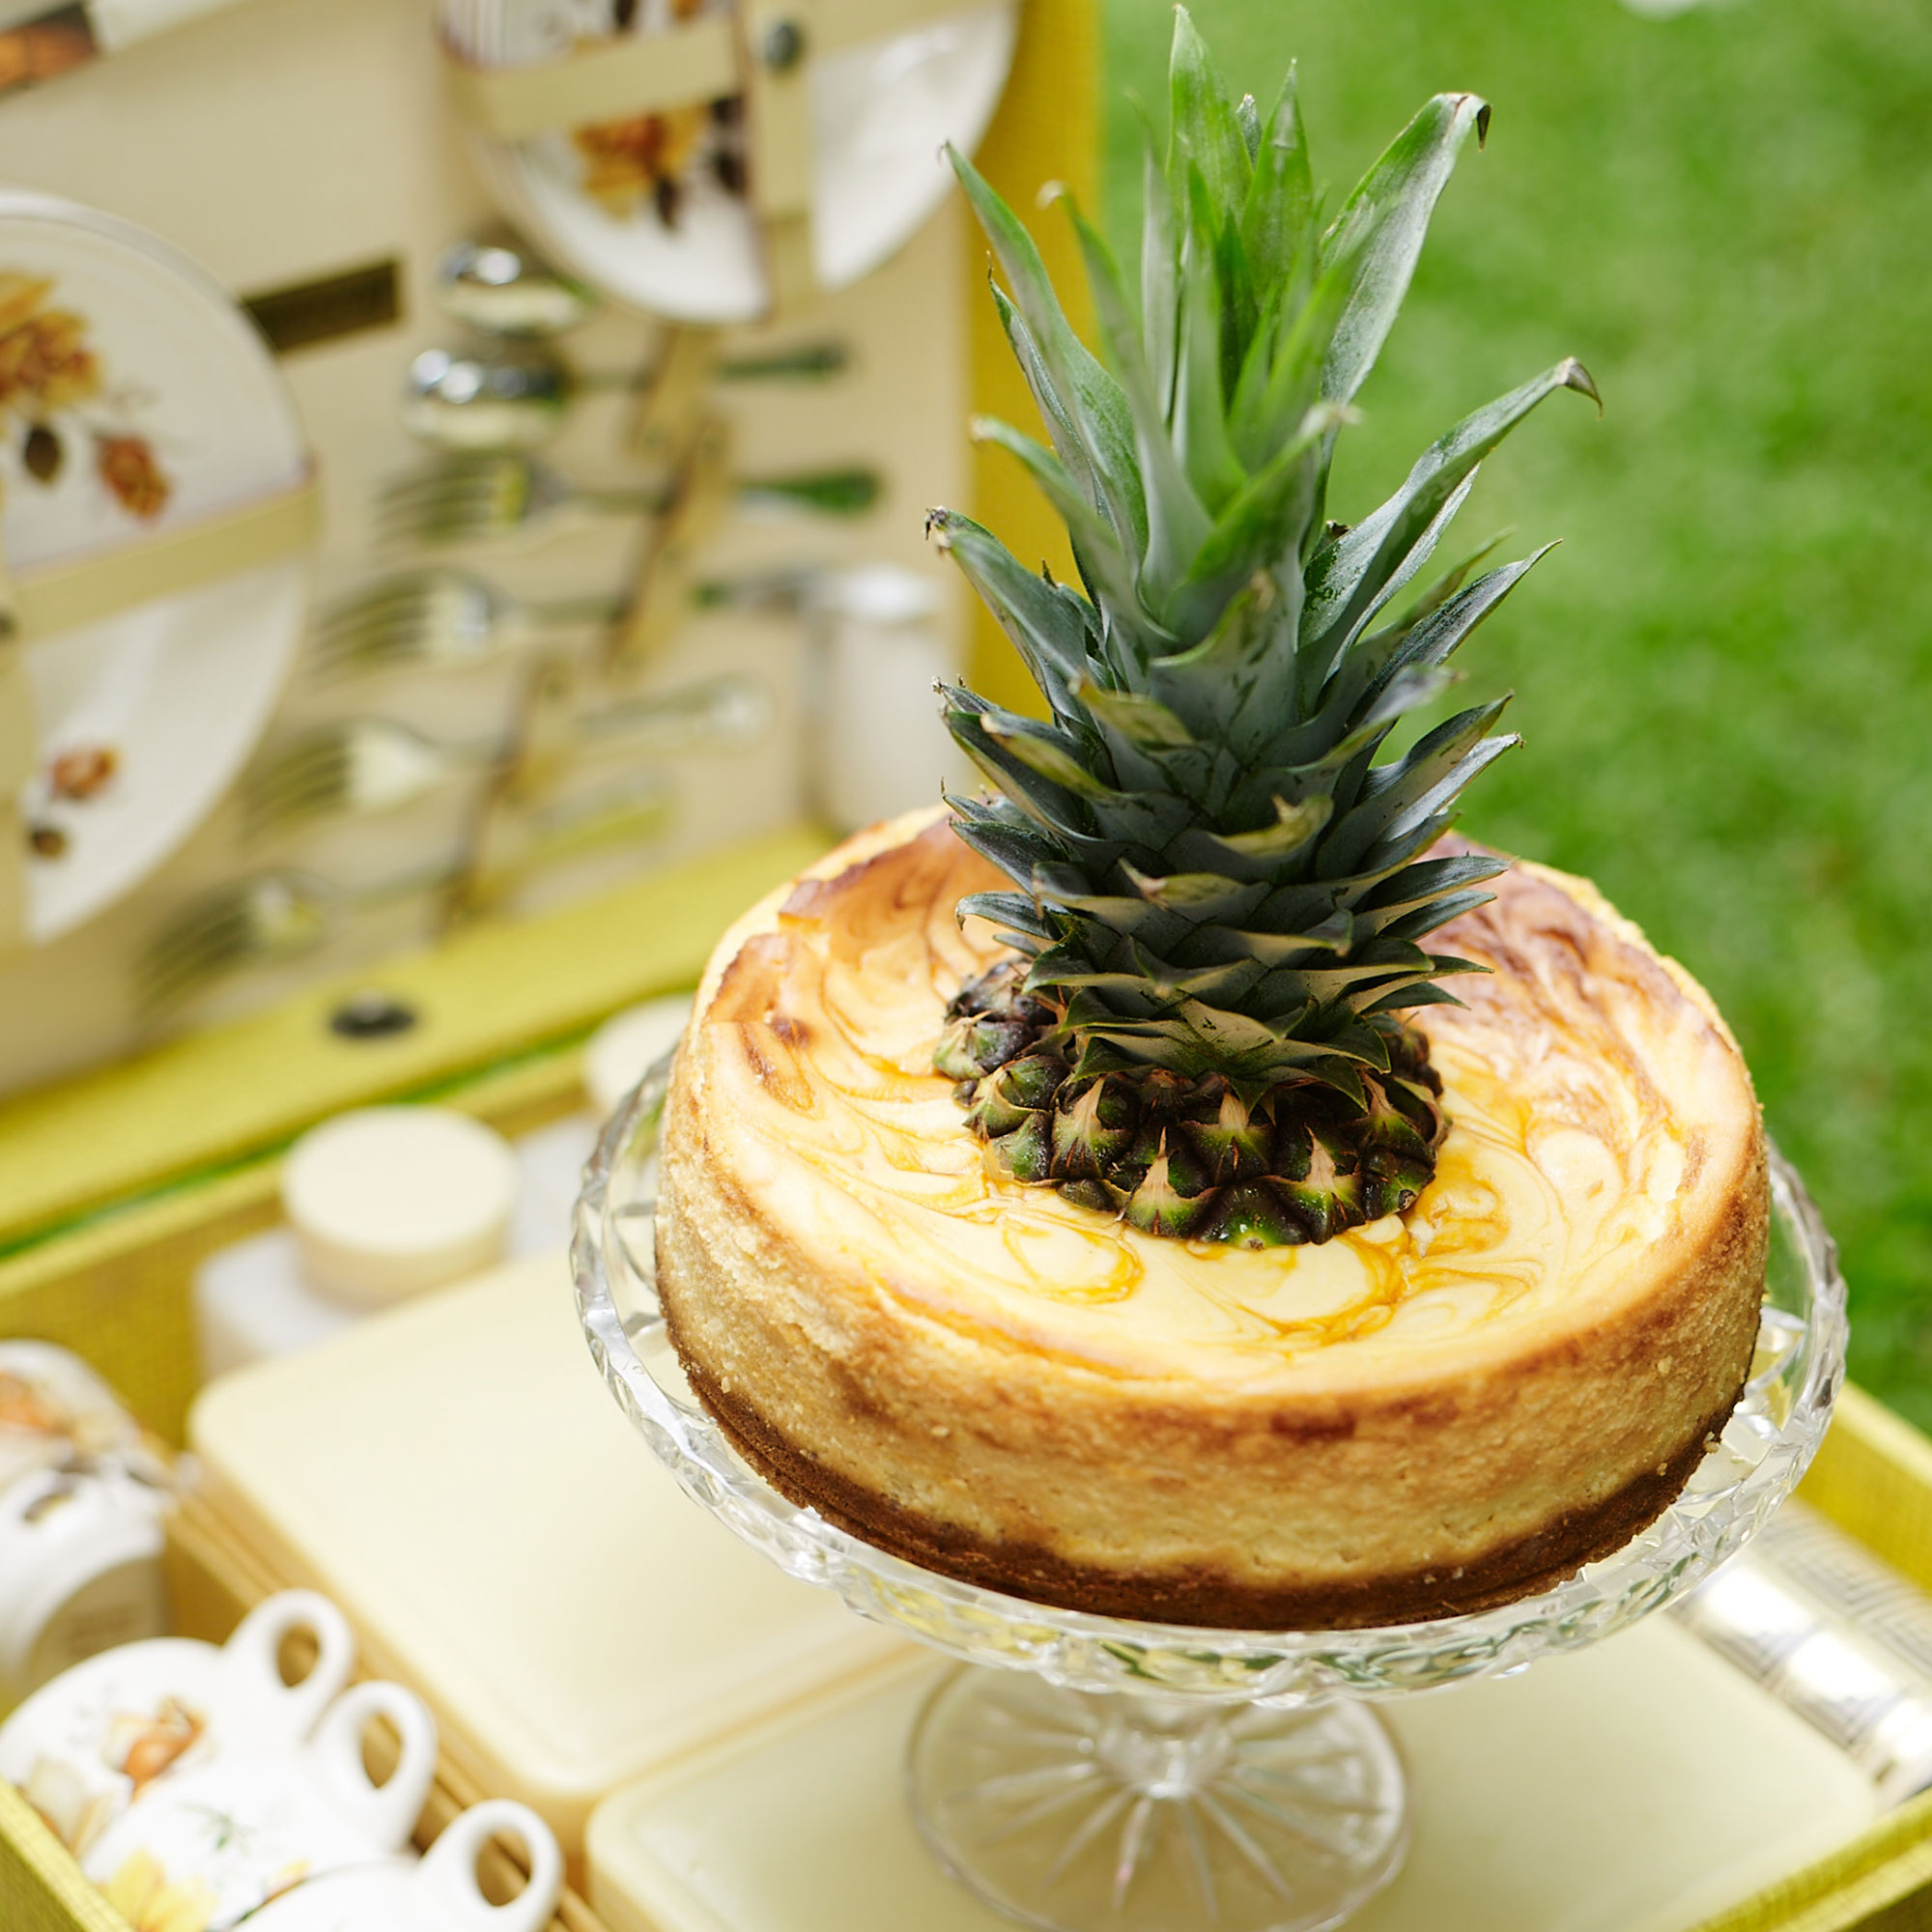 This pineapple and passionfruit cheesecake will add the perfect summer flavours to your table